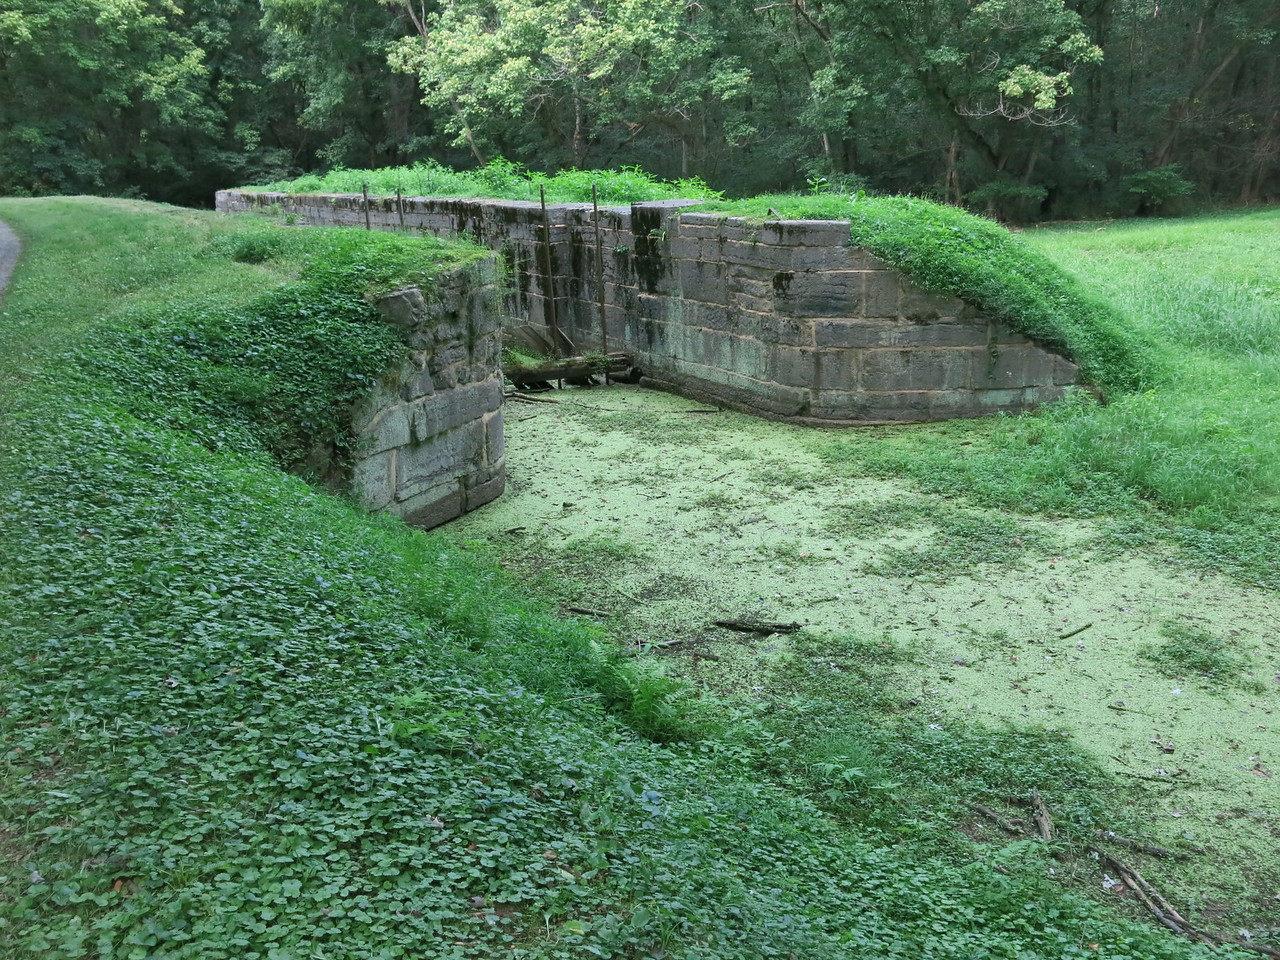 Looking back at the remnants of Lock 43 from the downstream side